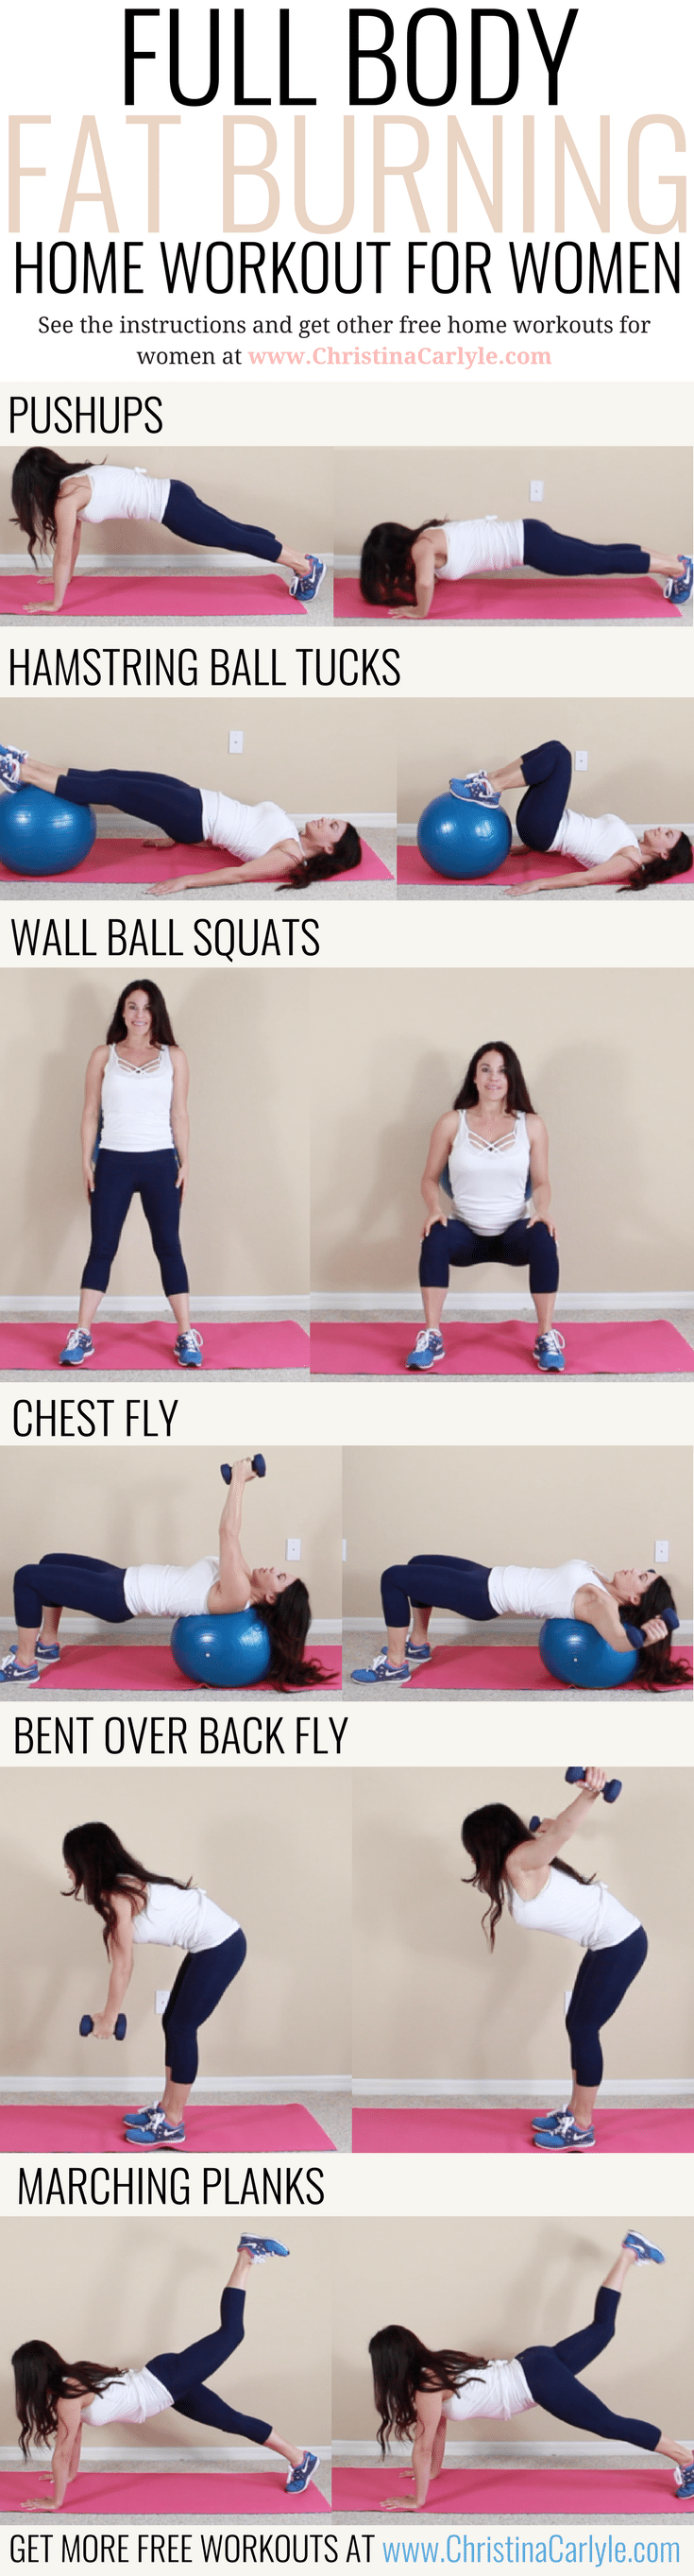 Full Body Fat Burning Workout Routine for Women